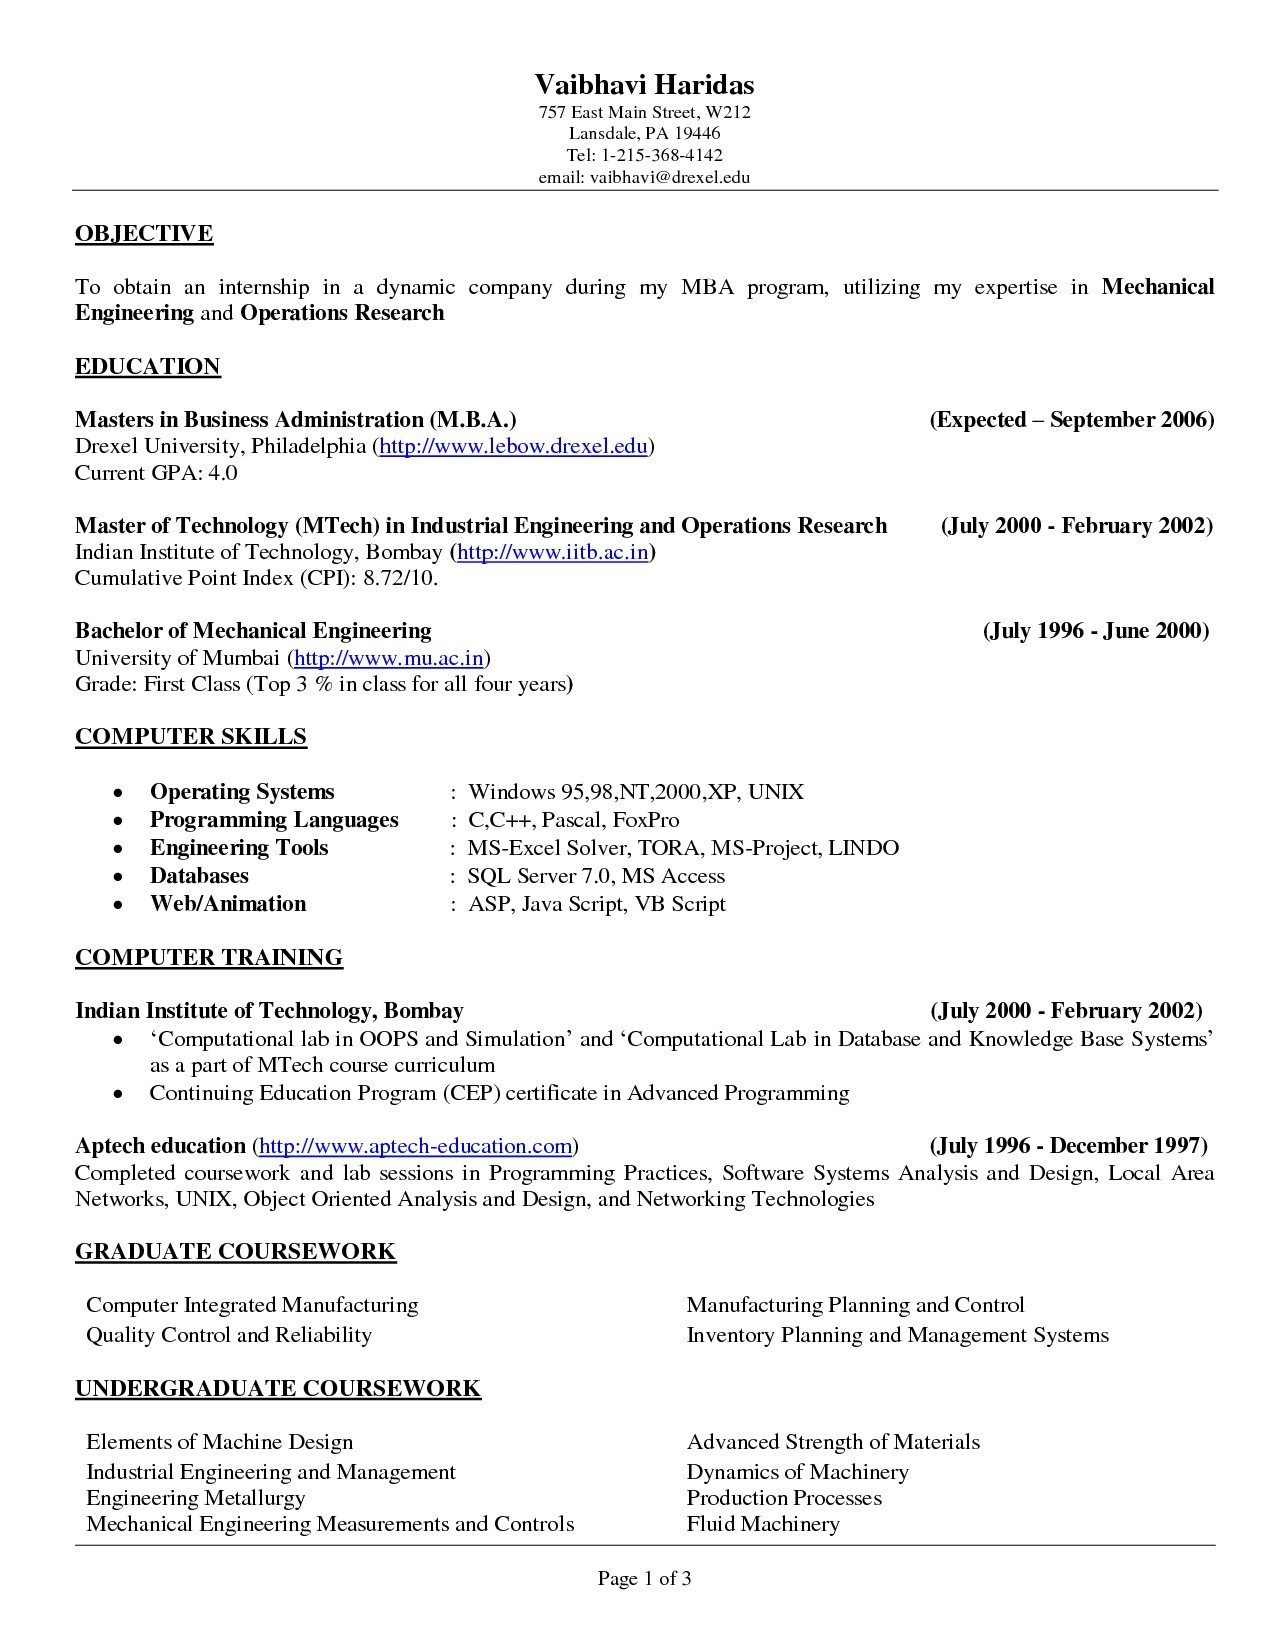 Self Description Words - Descriptive Words for Resume 15 New Descriptive Words for Resume